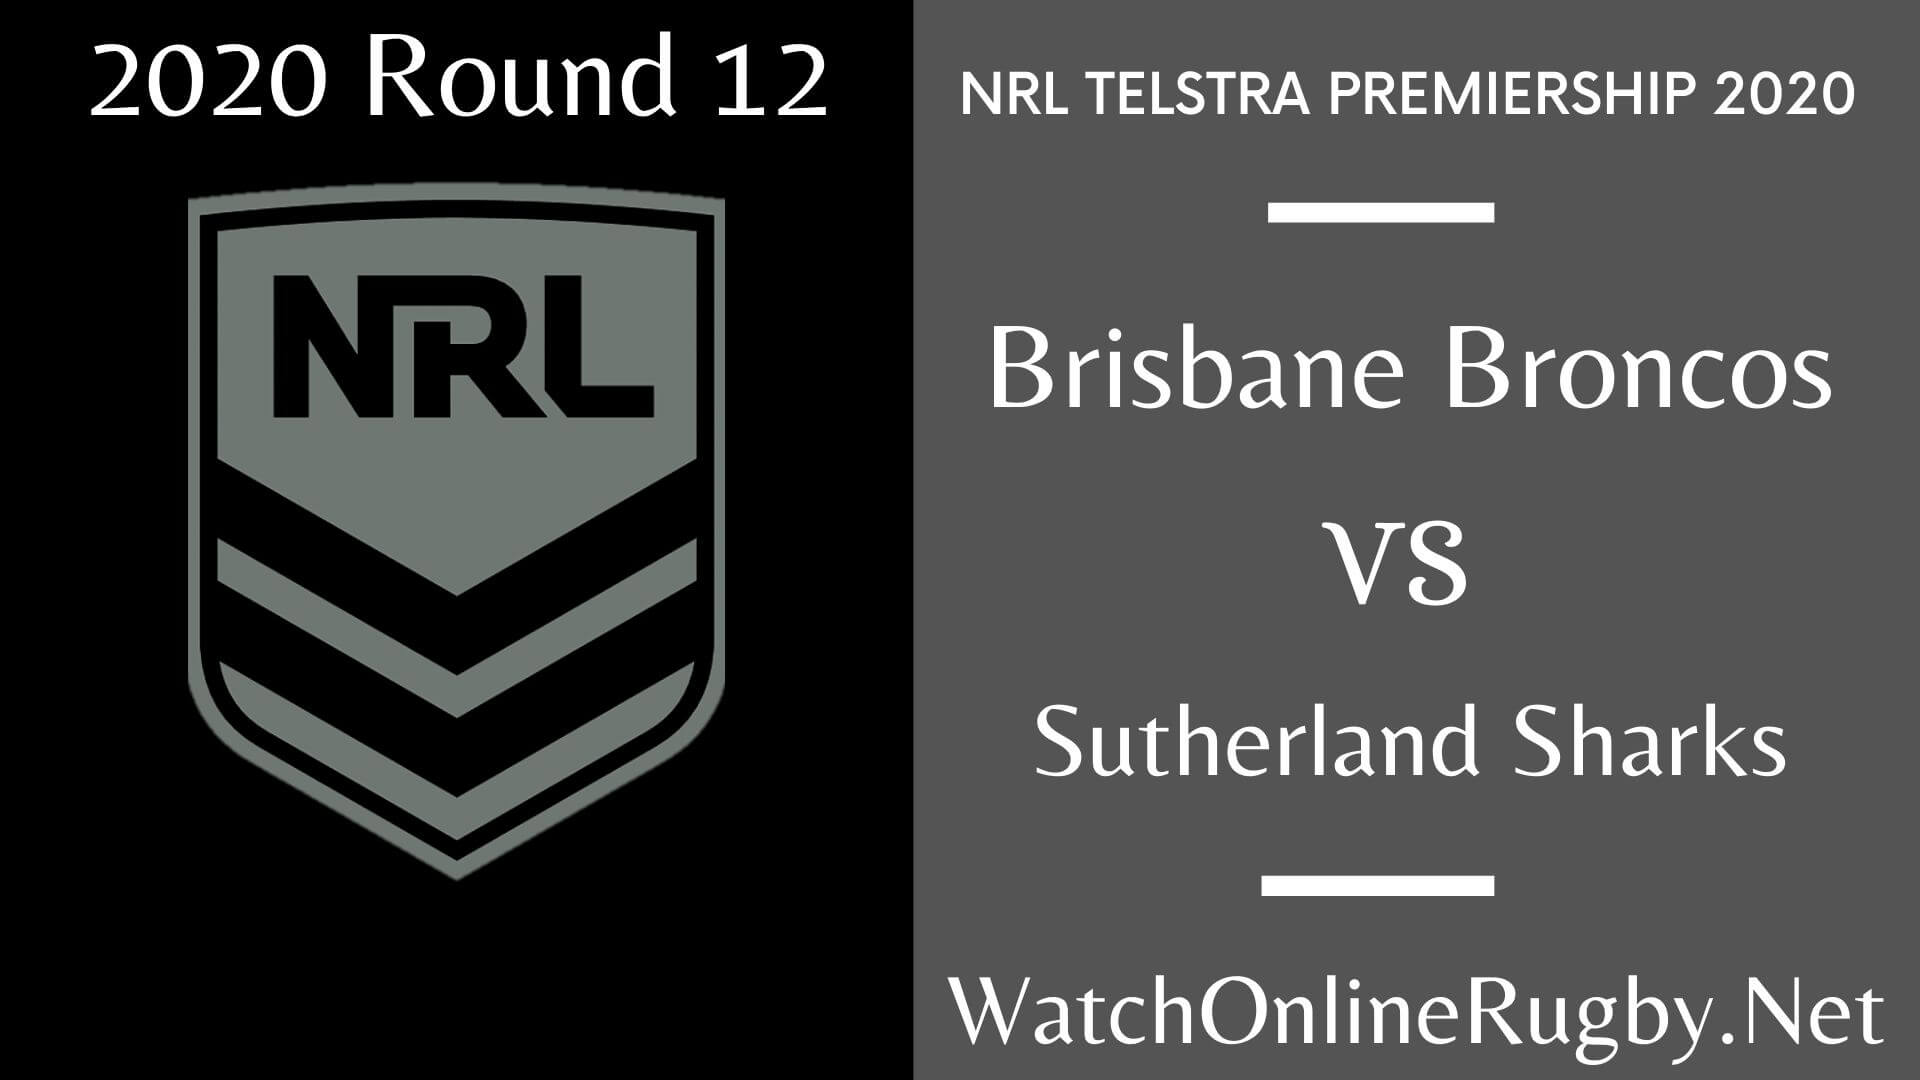 Broncos Vs Sharks Highlights 2020 Round 12 Nrl Rugby